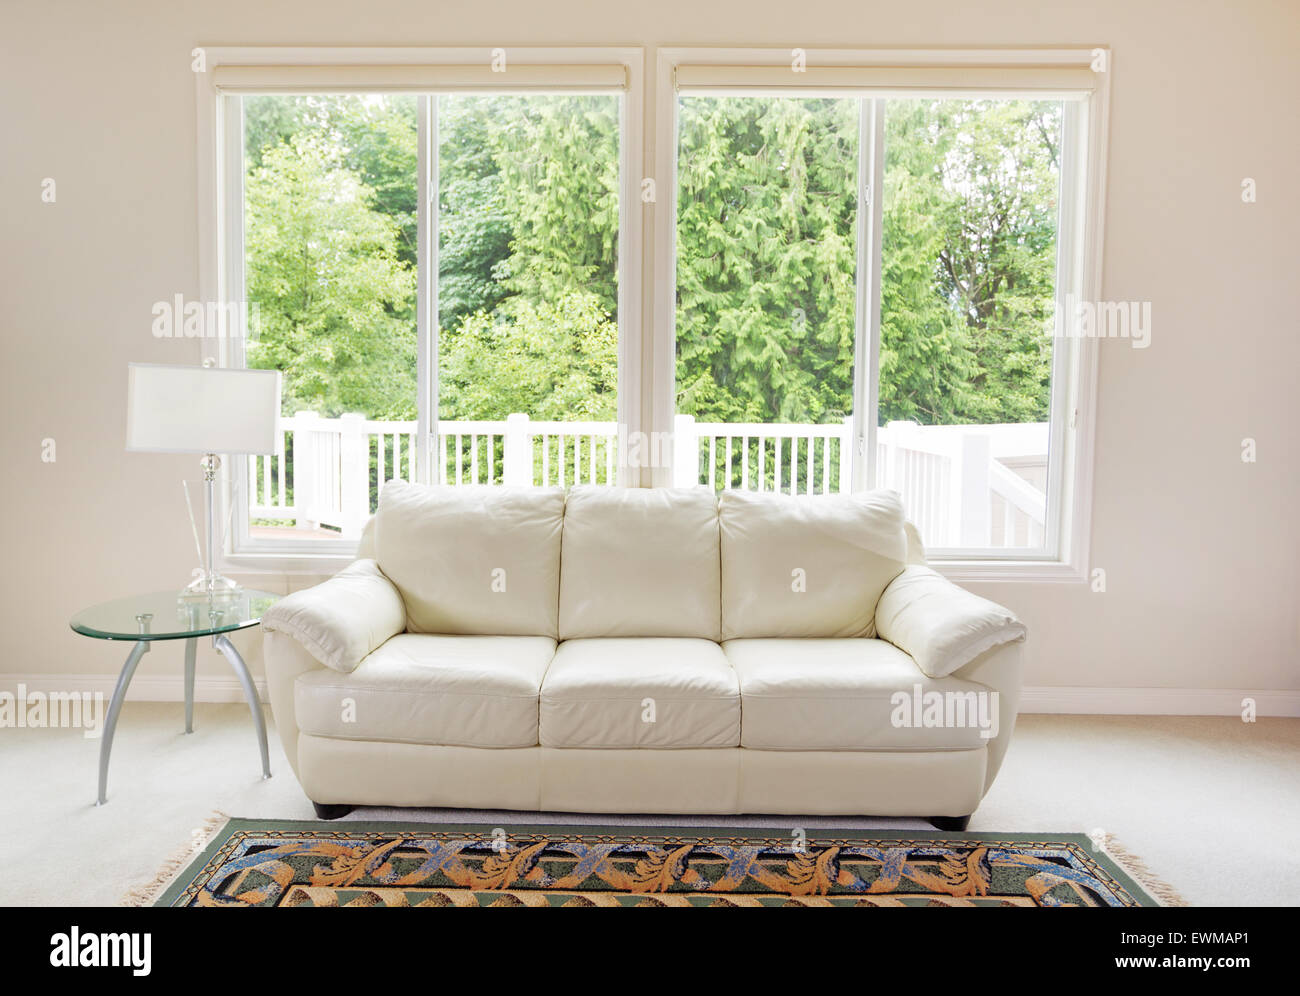 Groovy Clean Family Room With White Leather Couch And Large Windows Andrewgaddart Wooden Chair Designs For Living Room Andrewgaddartcom